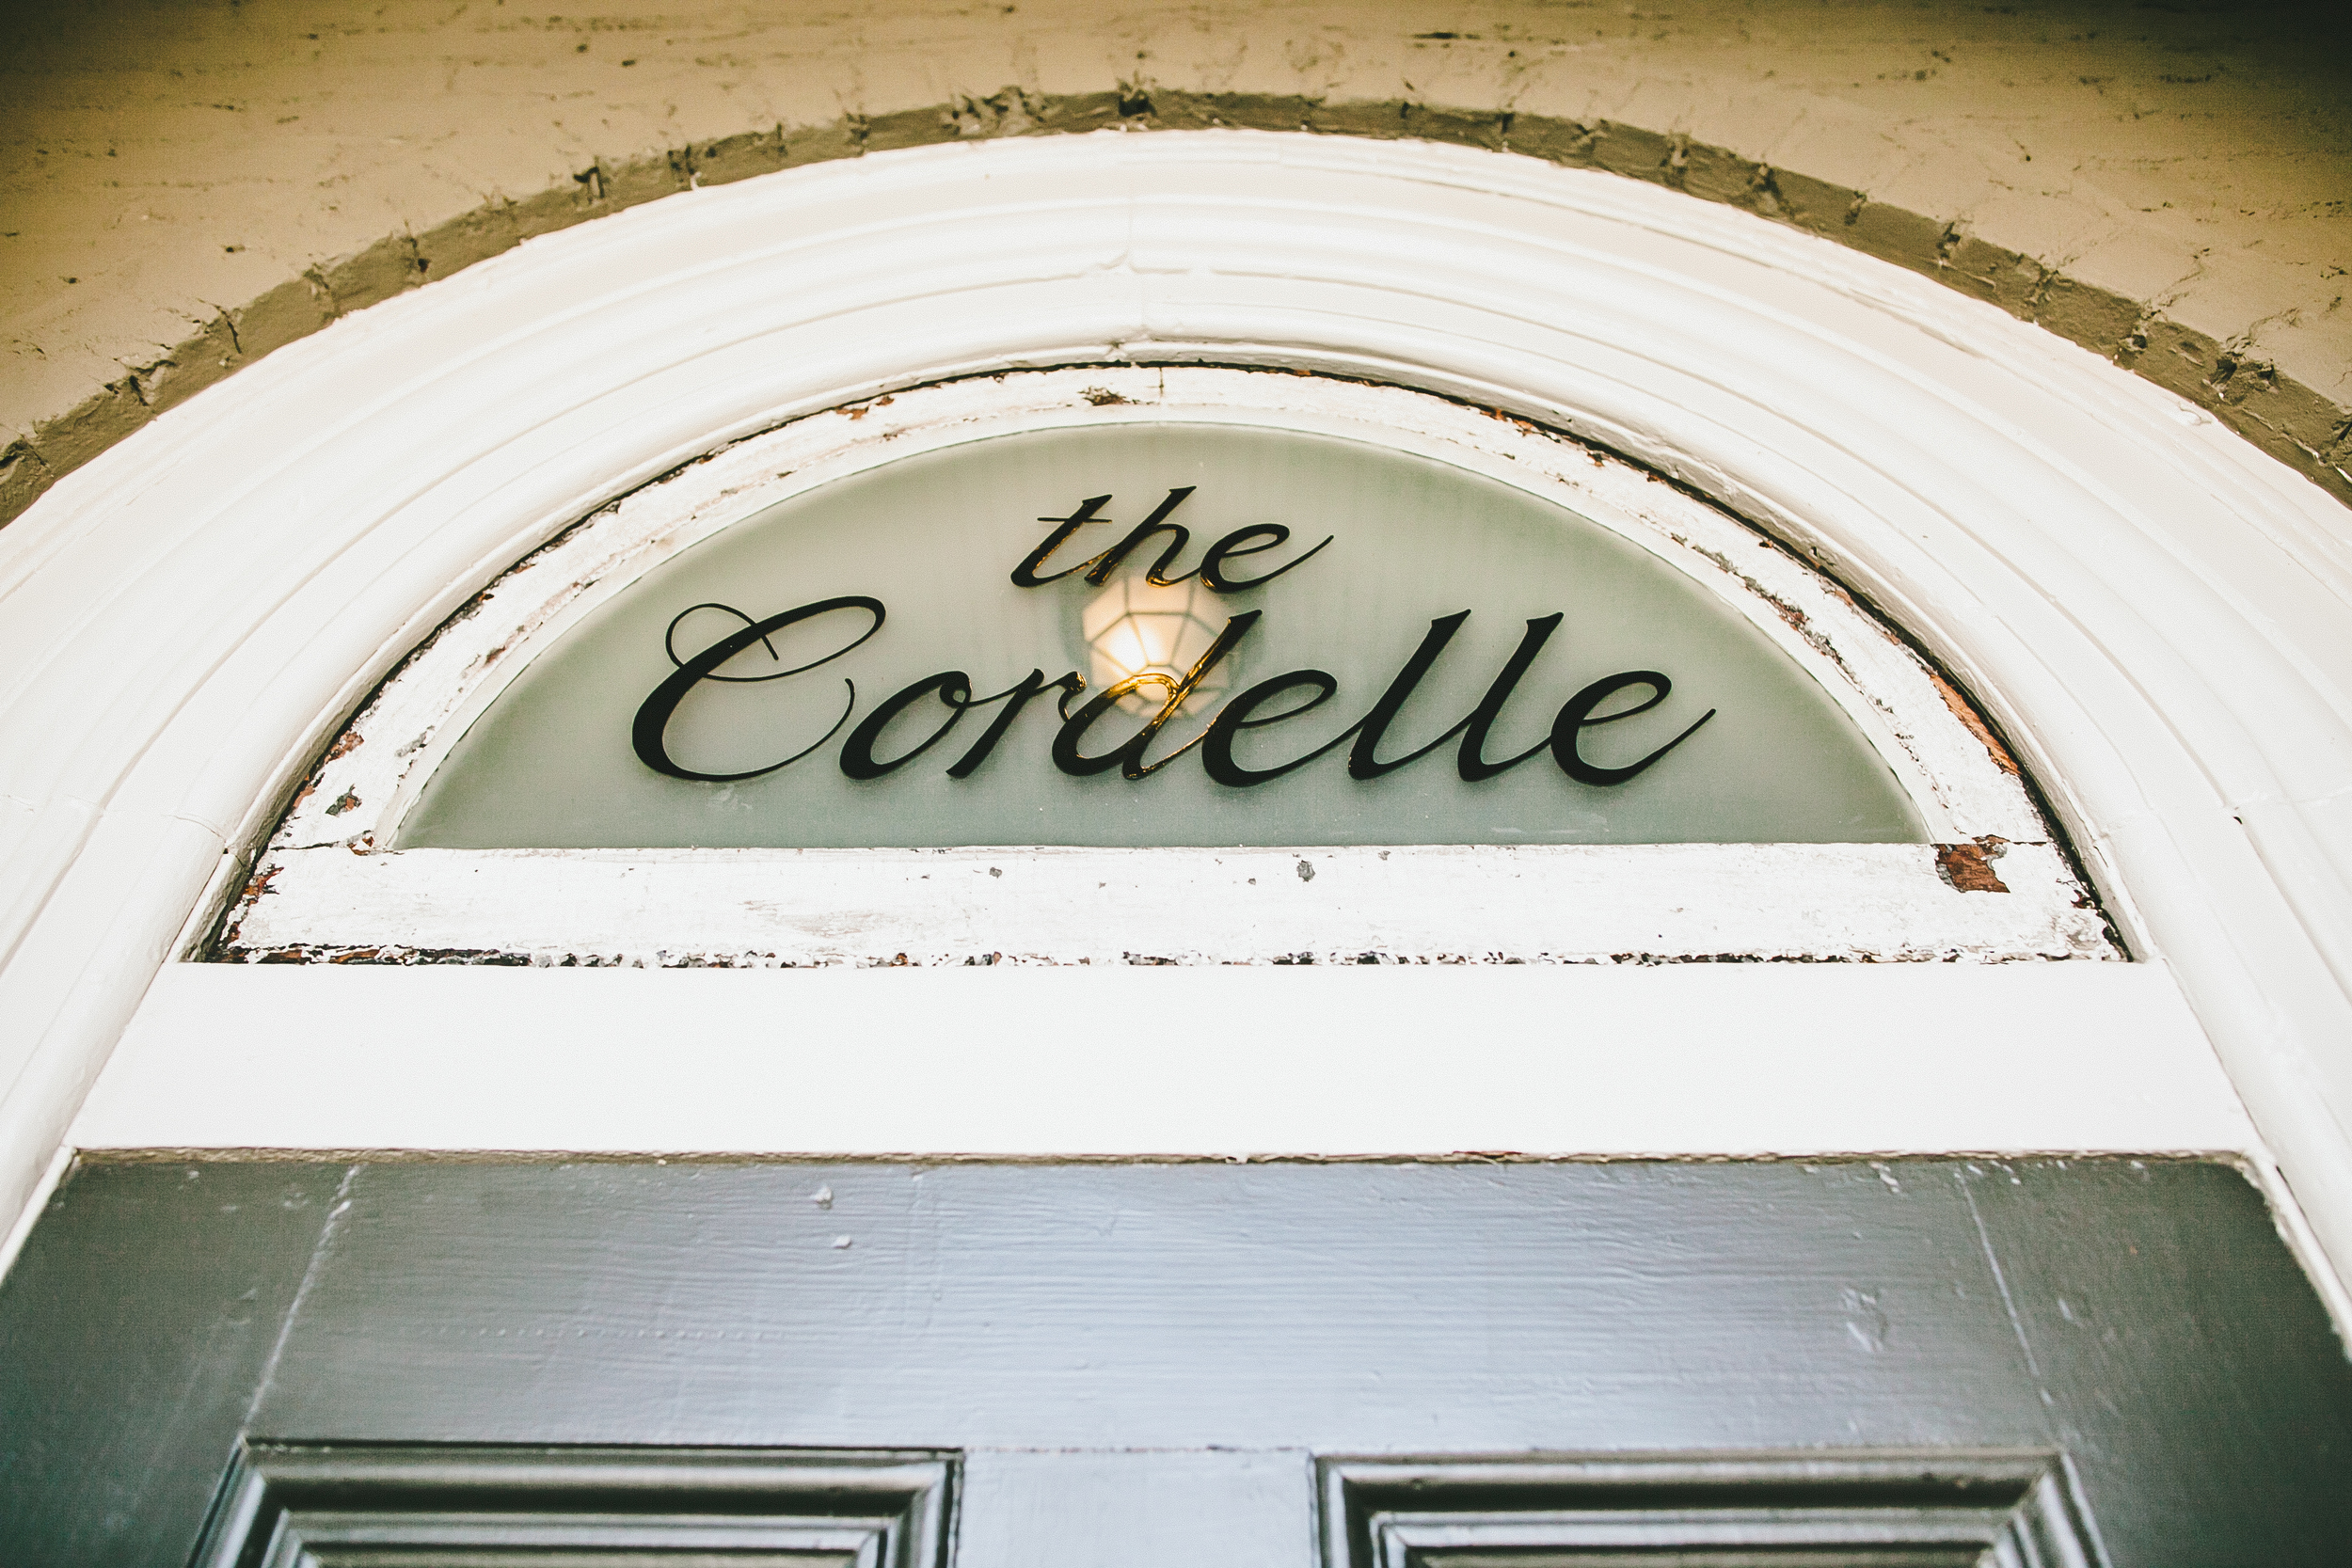 Kneale_Wedding_The_Cordelle_Sign